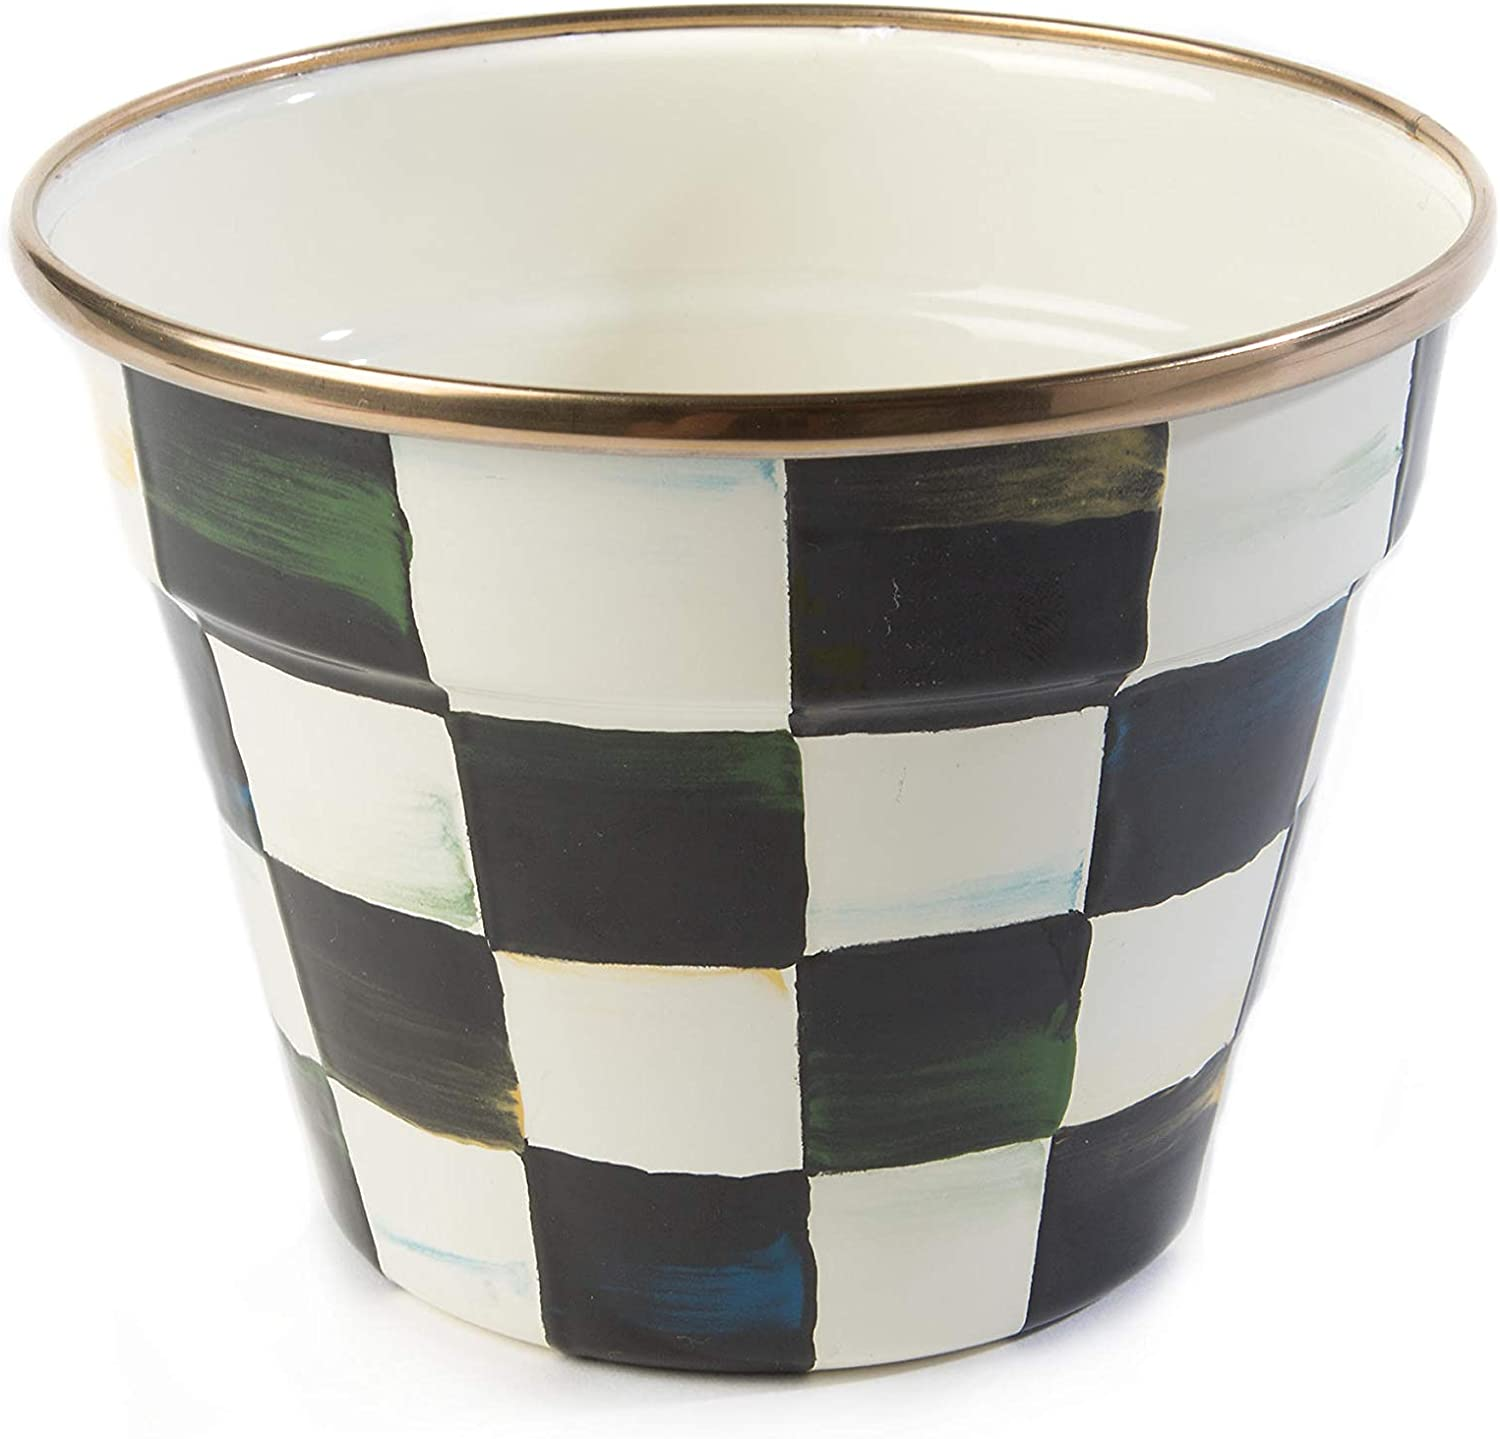 MacKenzie-Childs Courtly Check Garden Pot, Black-and-White Decorative Indoor Planter, Small